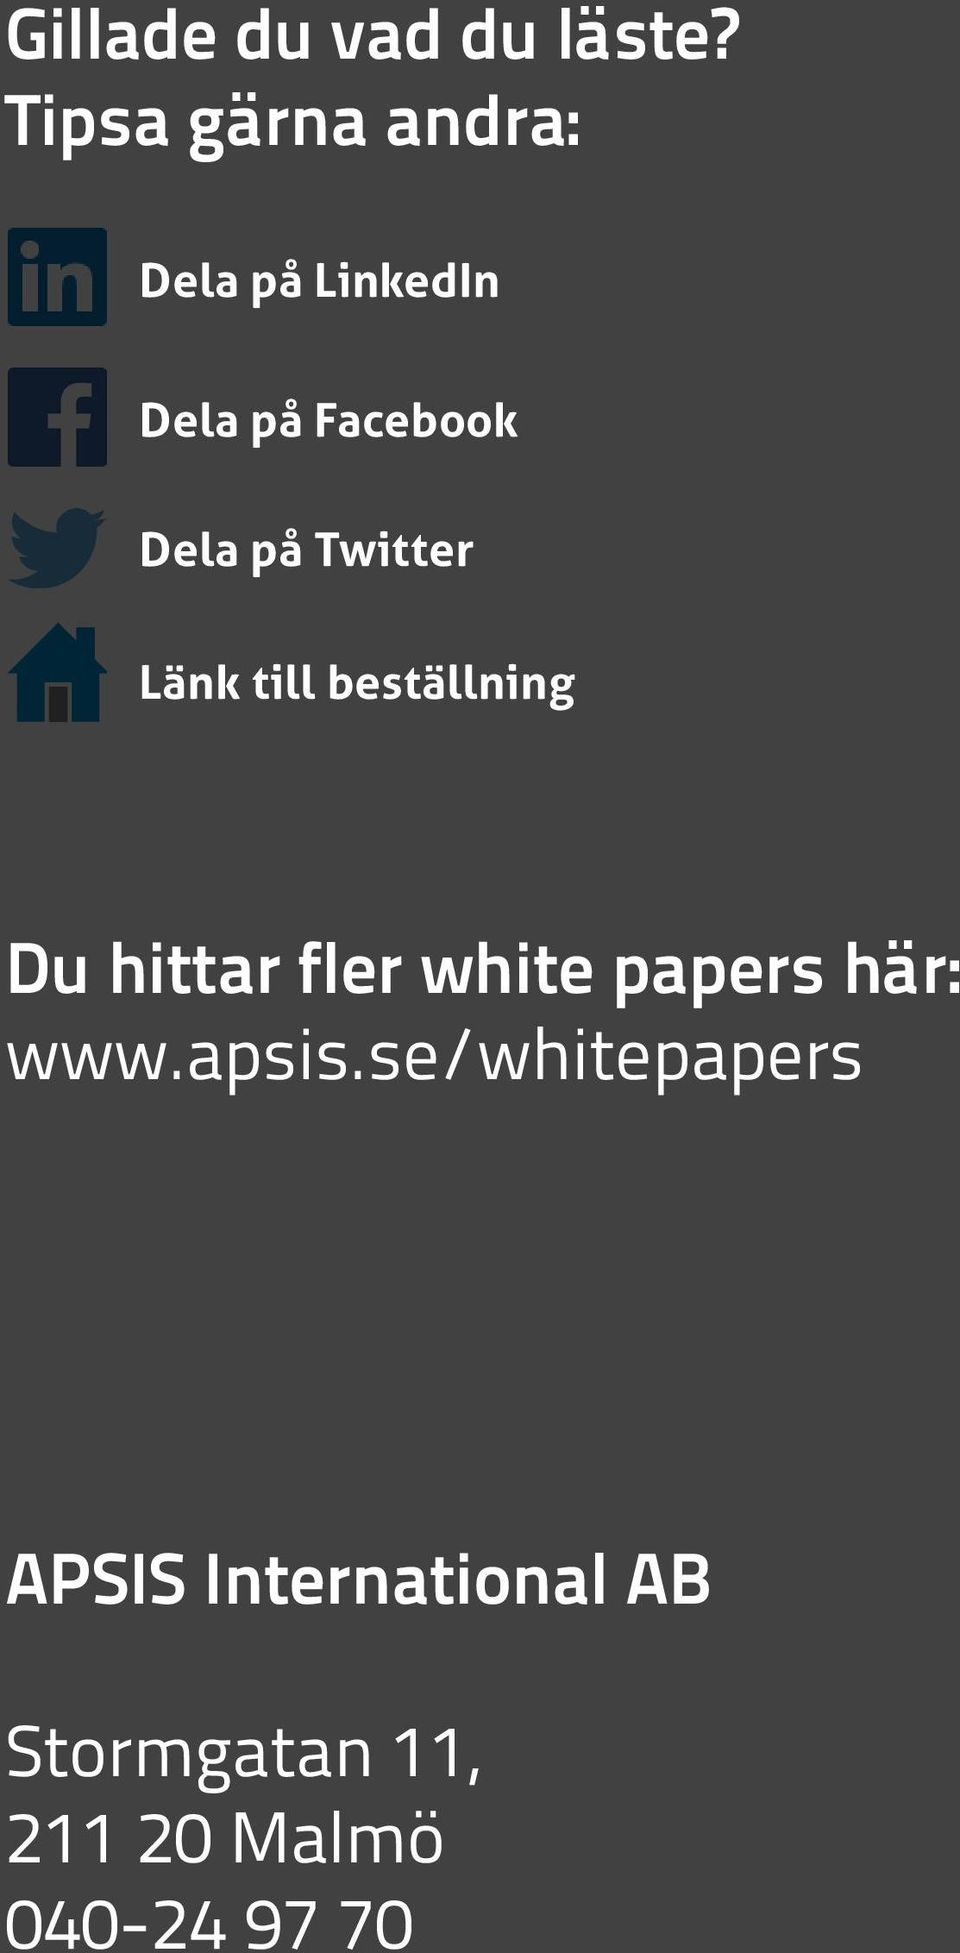 papers här: www.apsis.